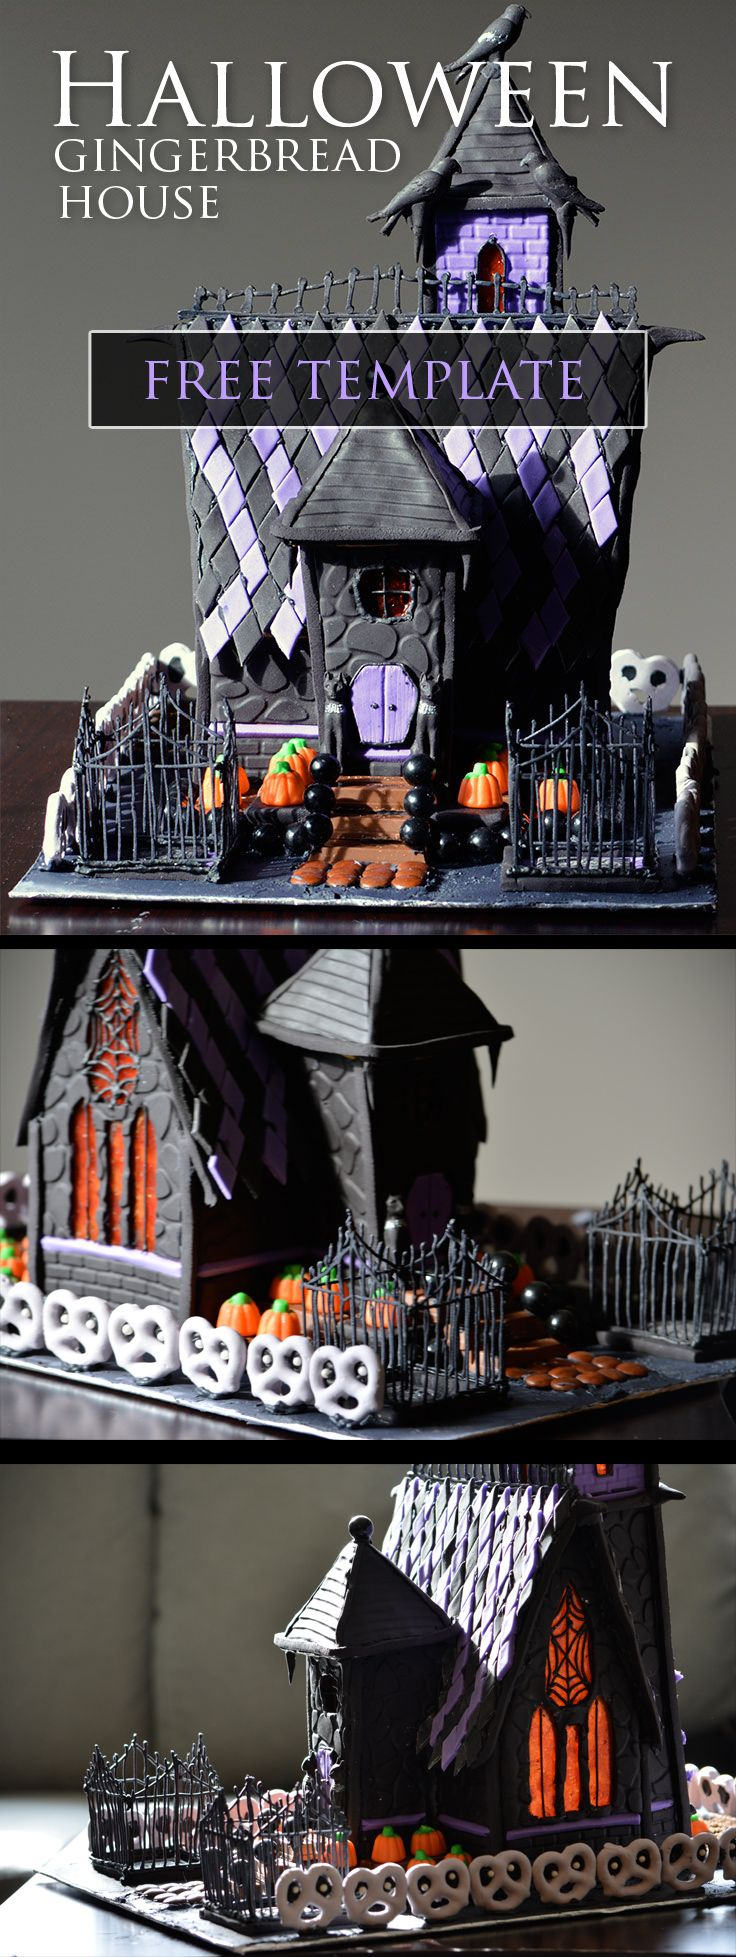 Free gingerbread house template at: http://www.doylecraft.ca/tutorials/halloween-house-2014-process/